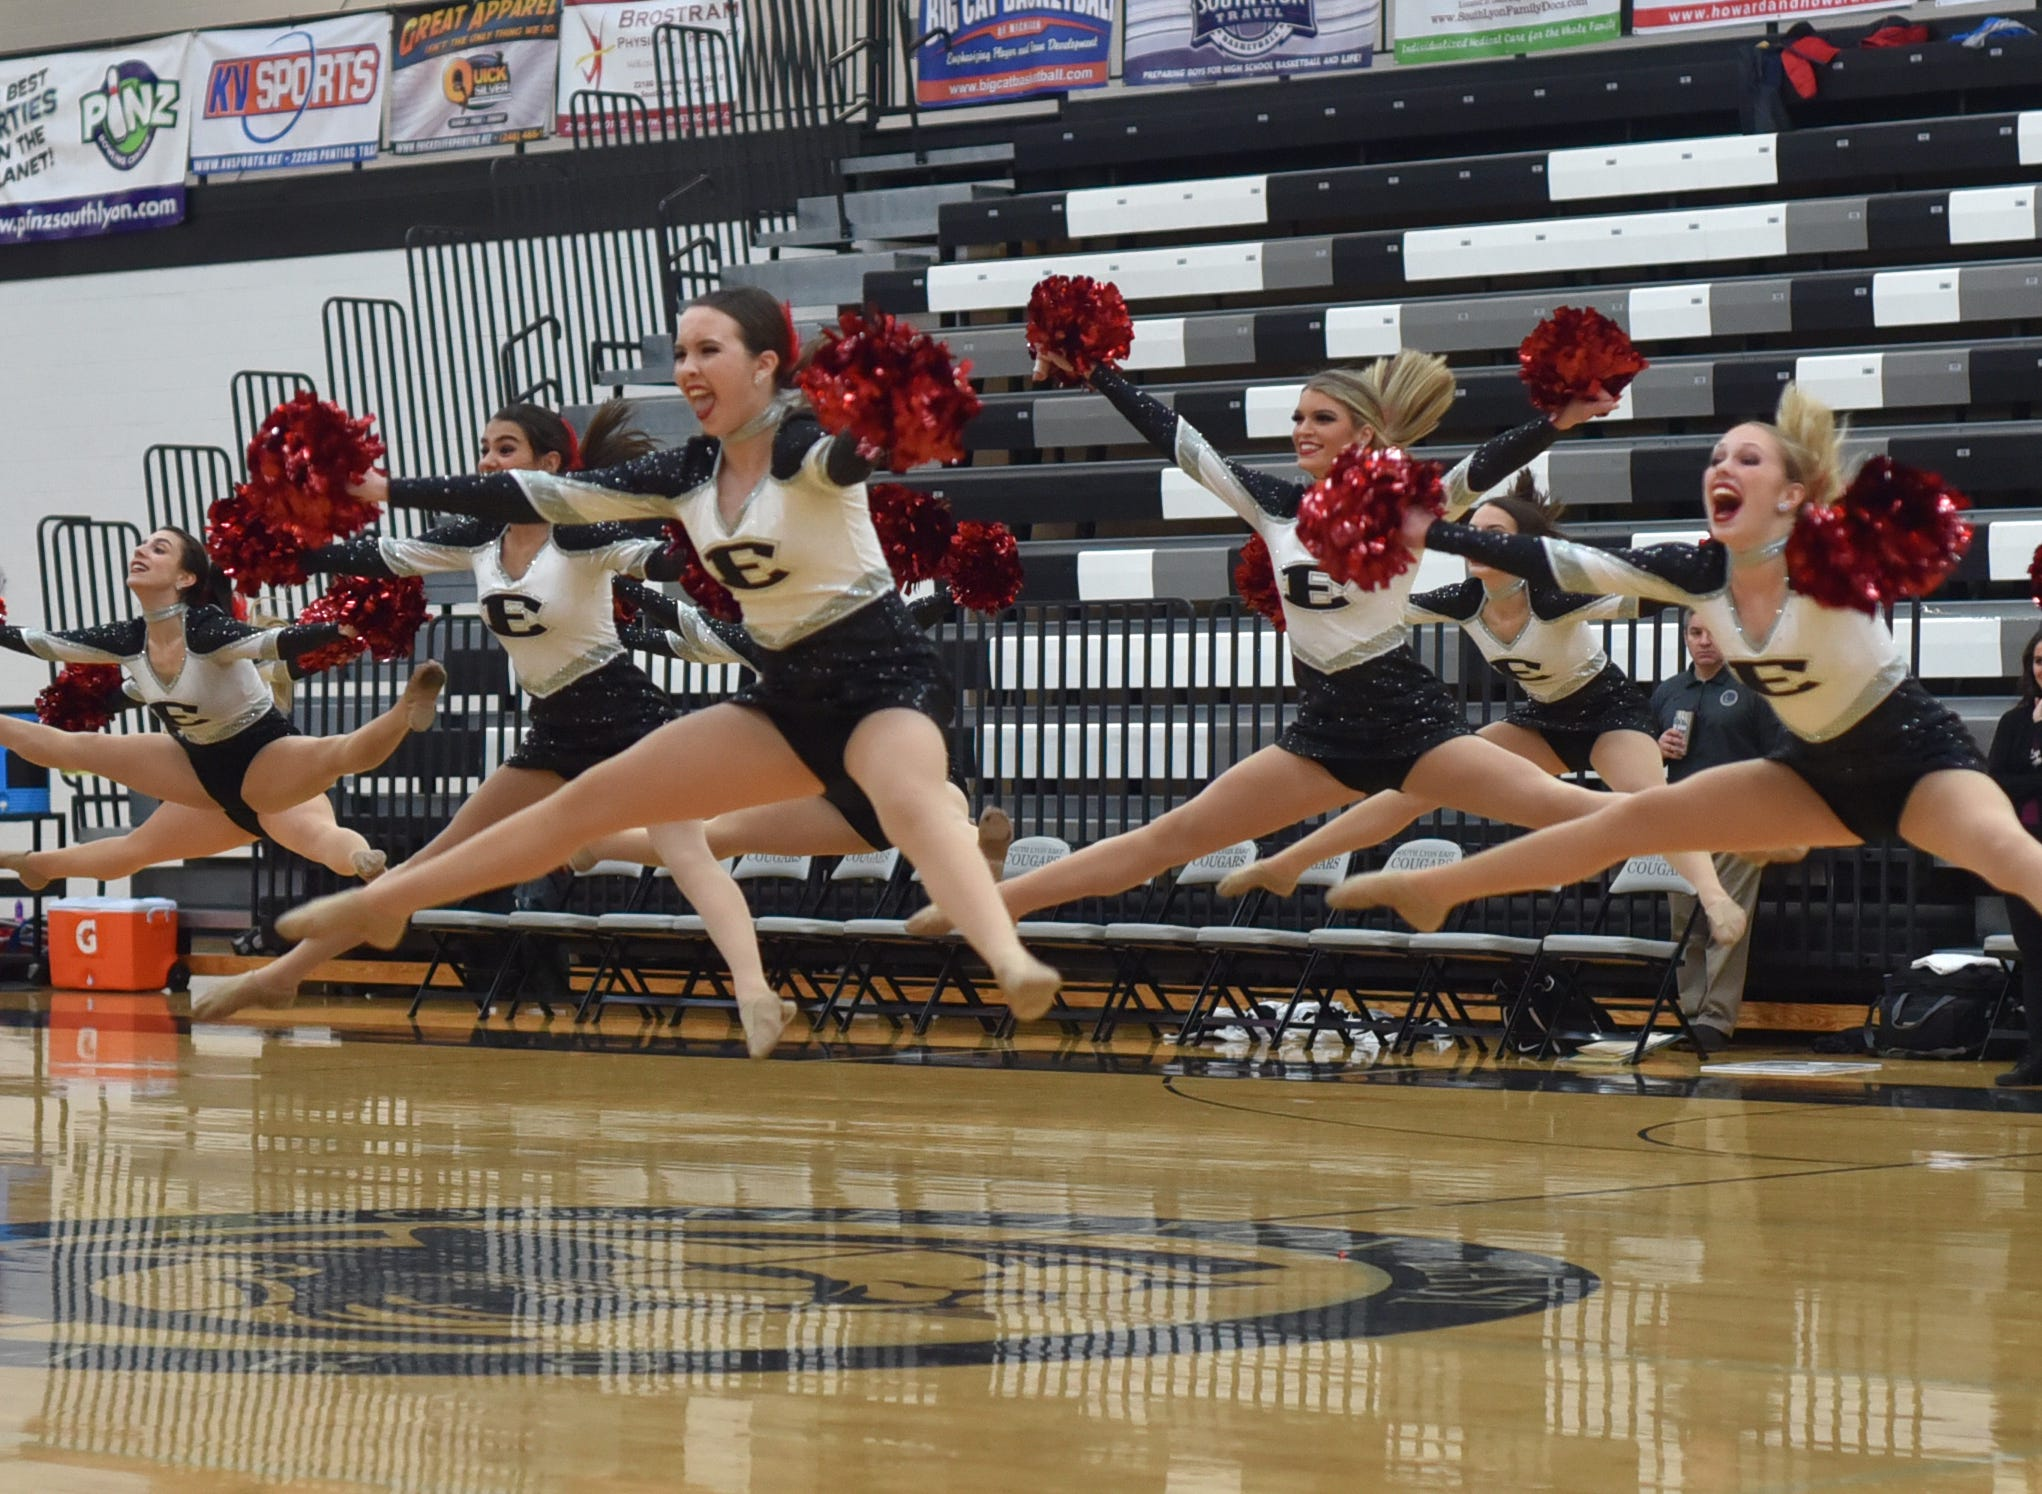 South Lyon East High's pom-pon squad performs at halftime.